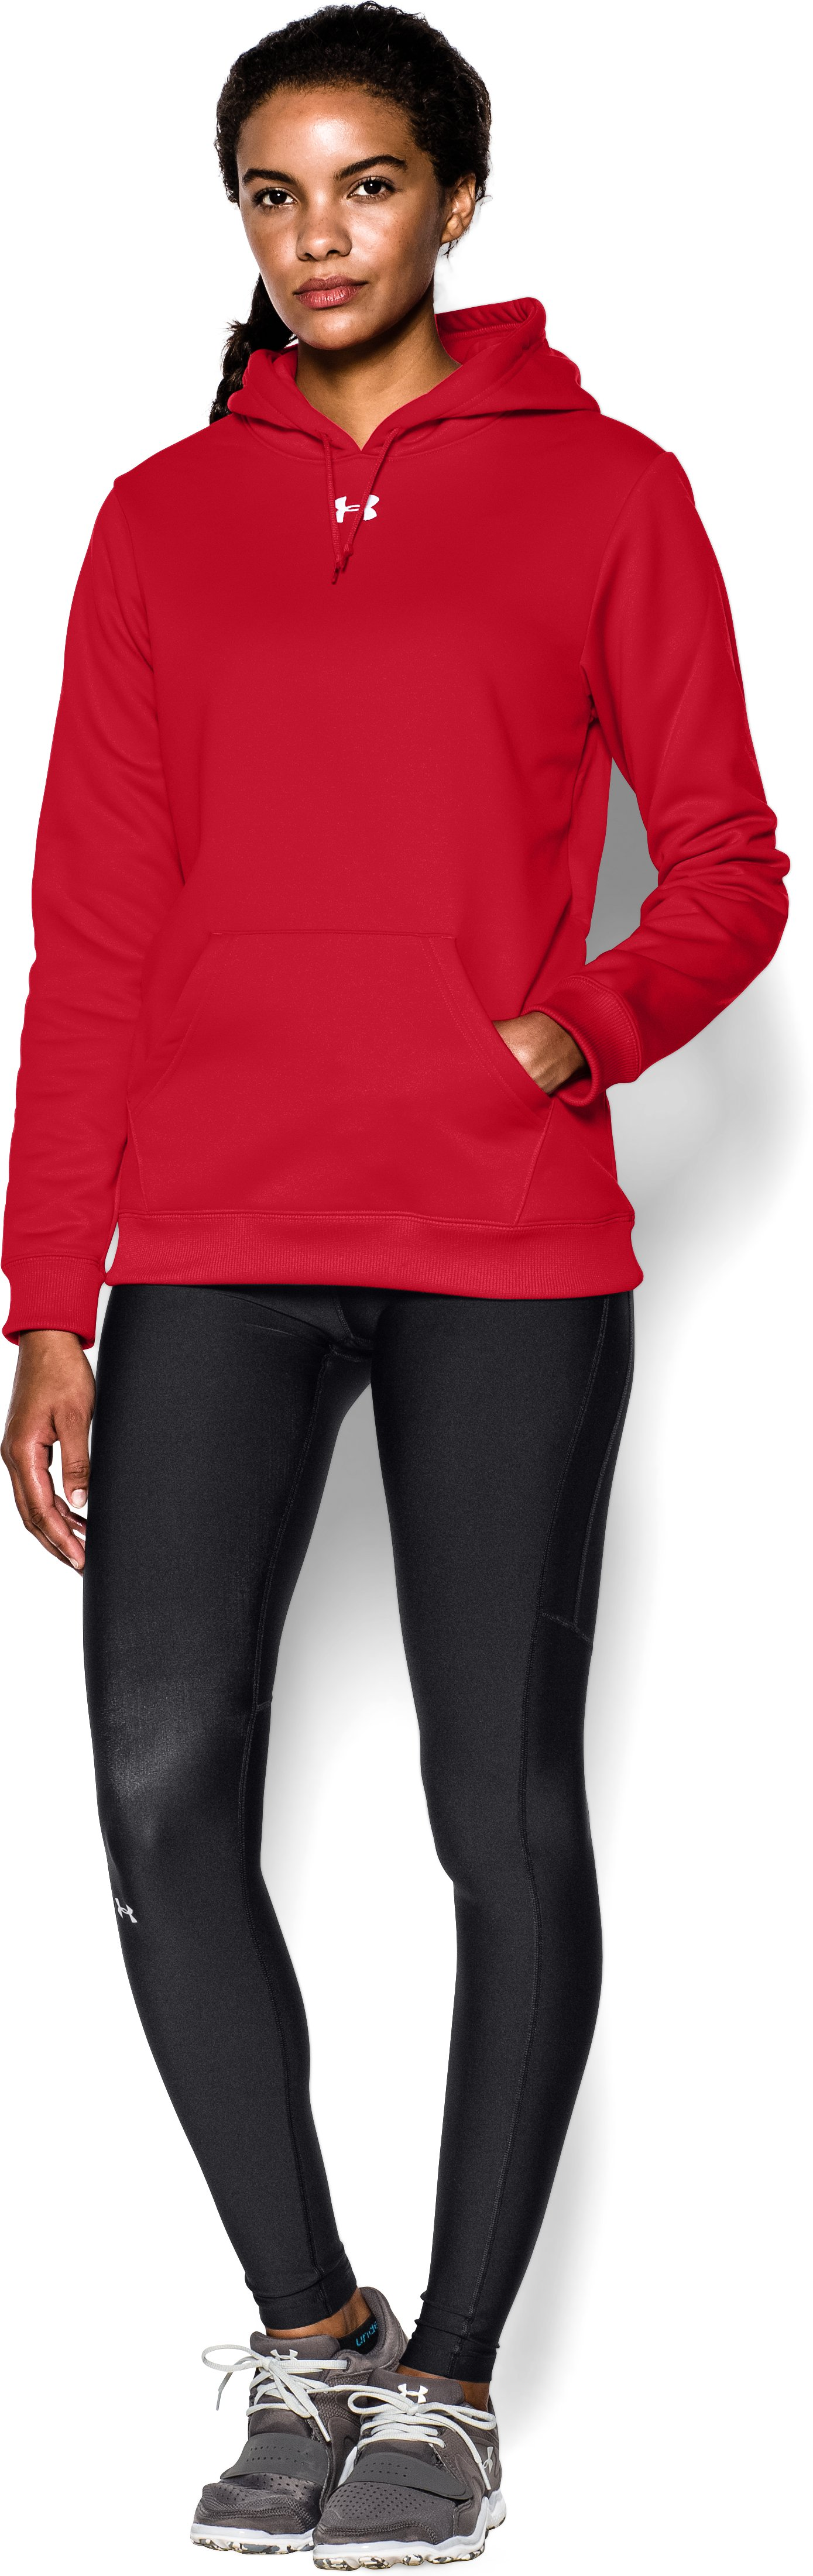 Women's Armour® Fleece Team Hoodie, Red, zoomed image